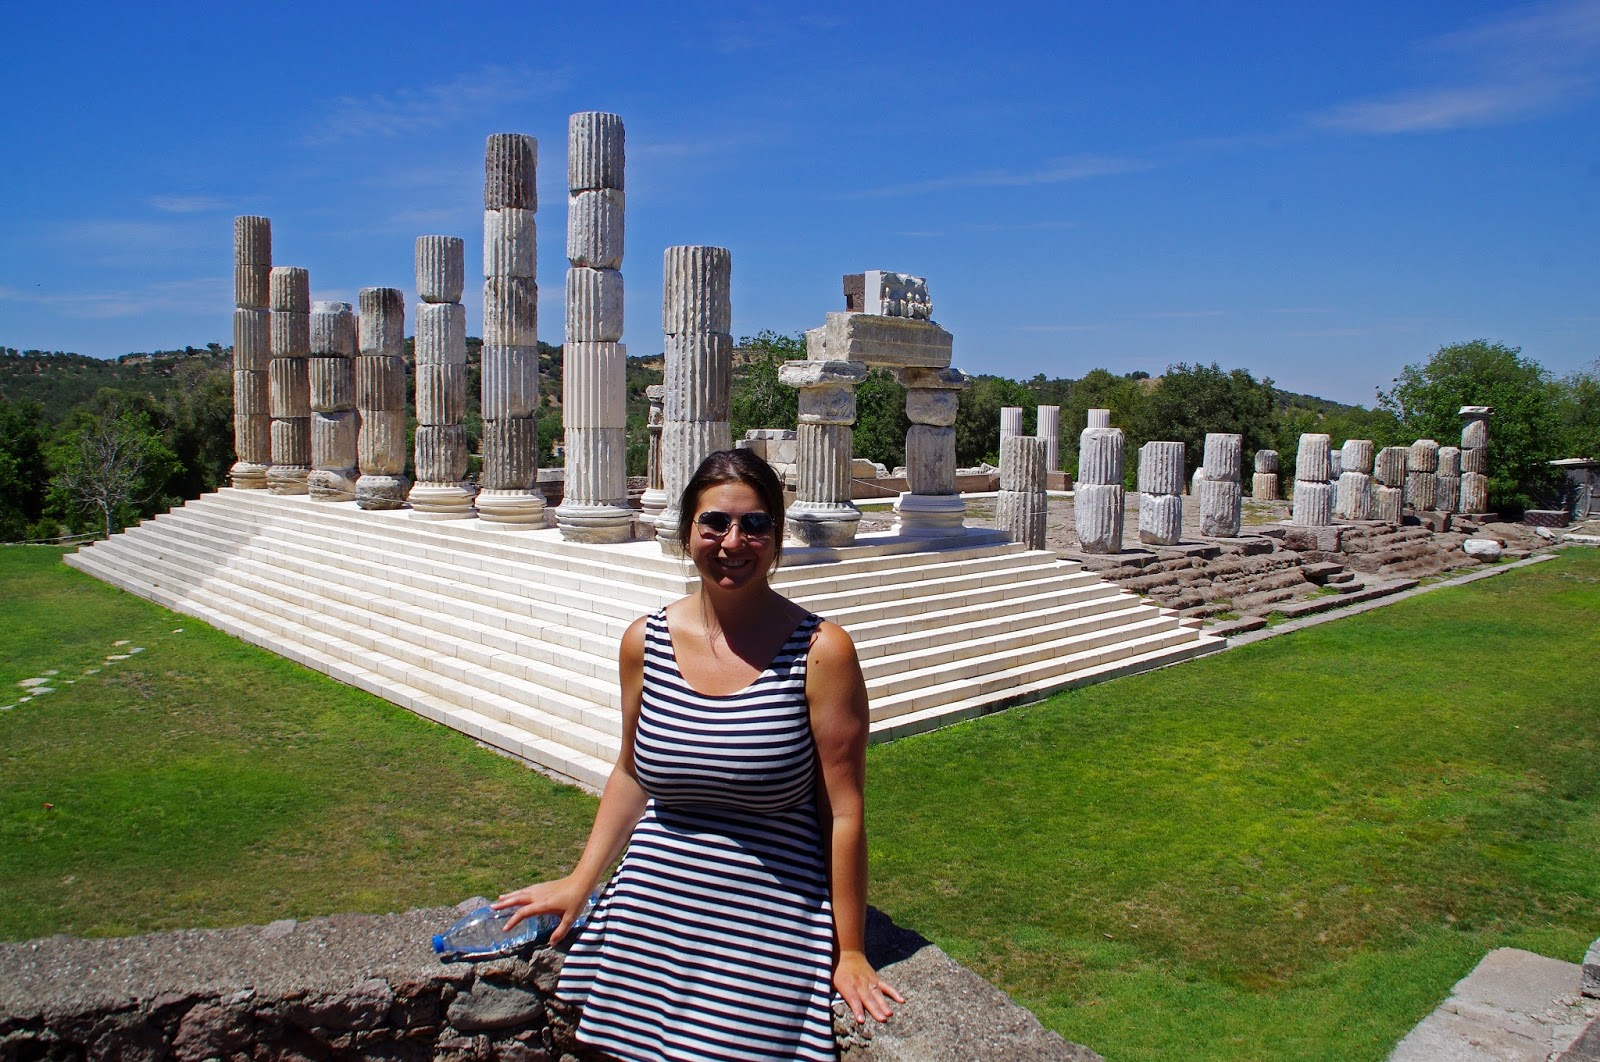 Simone at Apollon Symintheion ruins